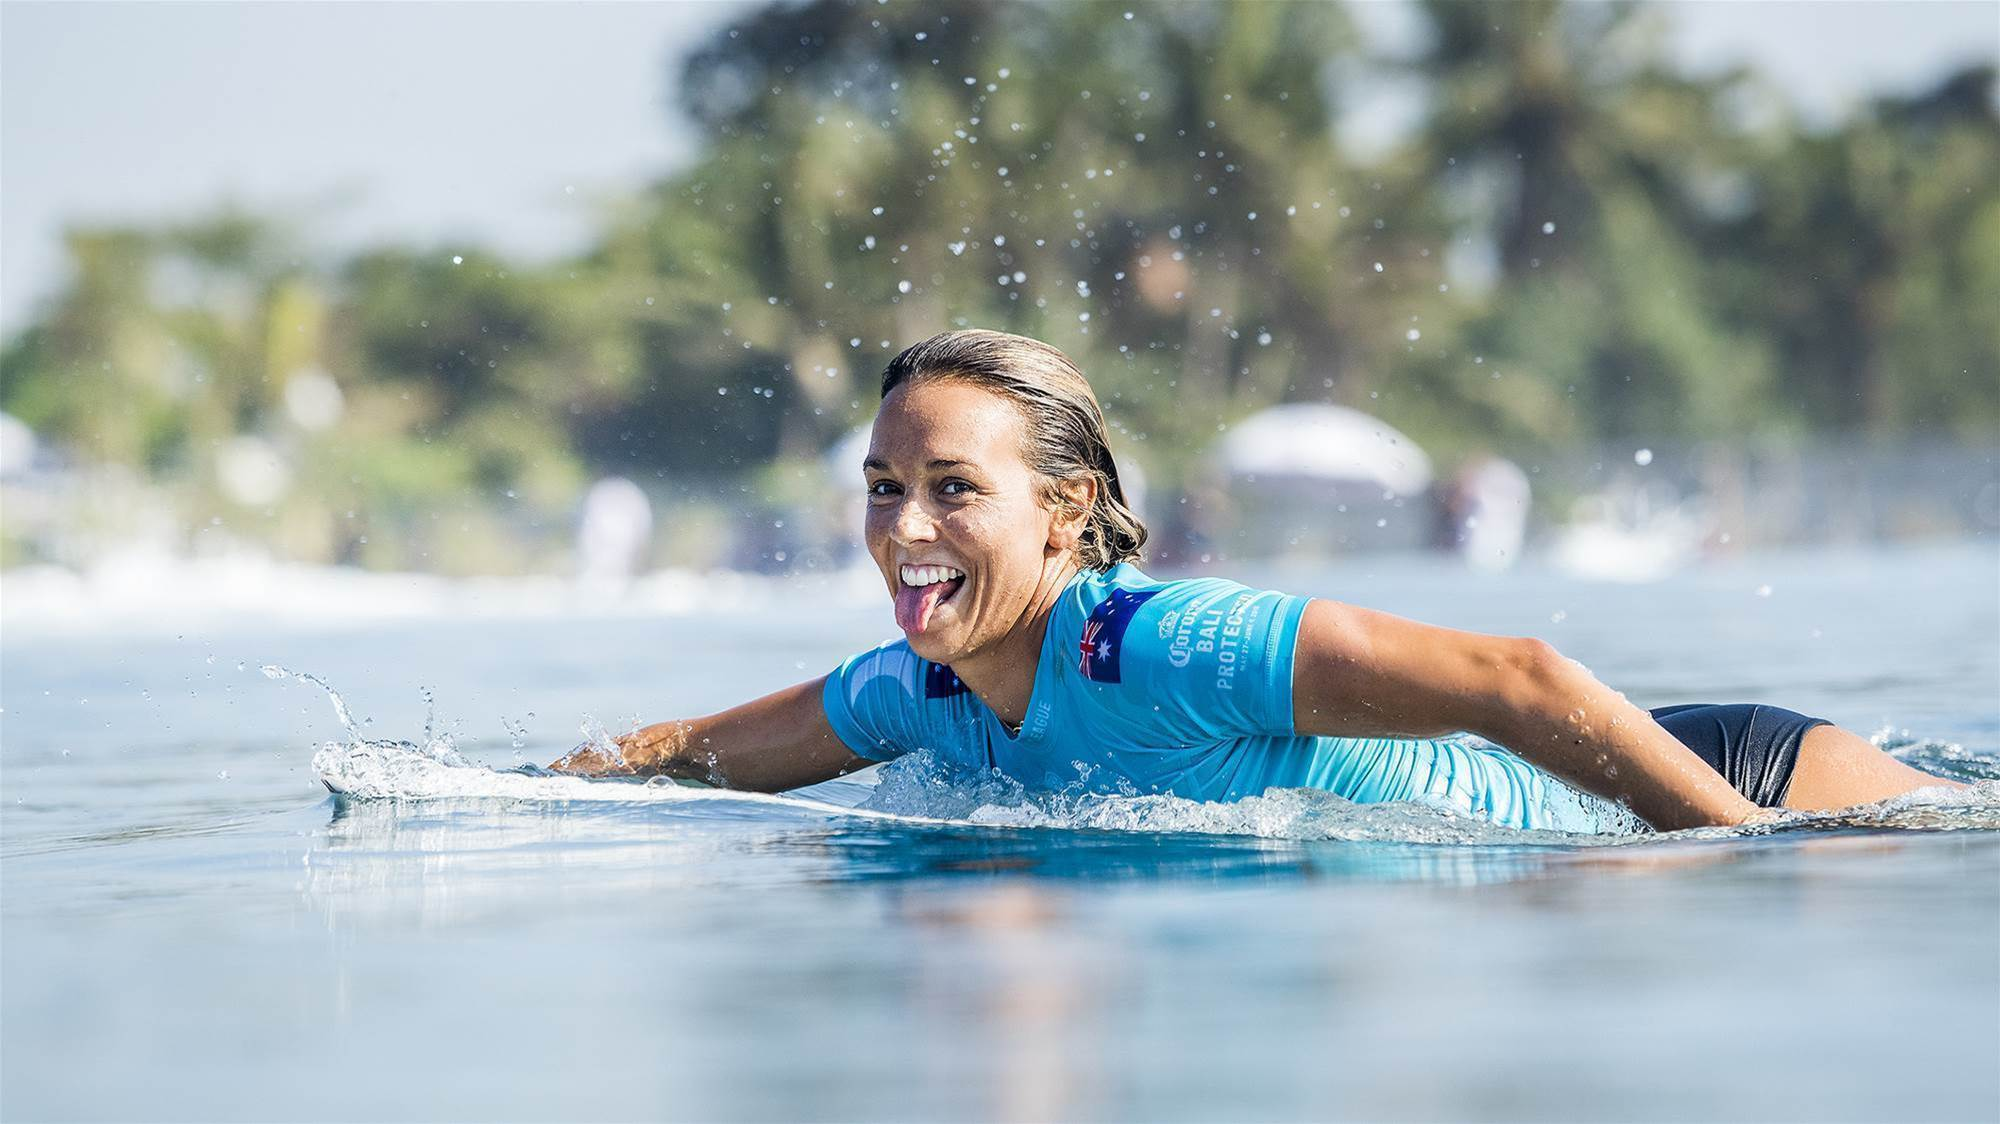 Female surfers chance to compete in Pro event